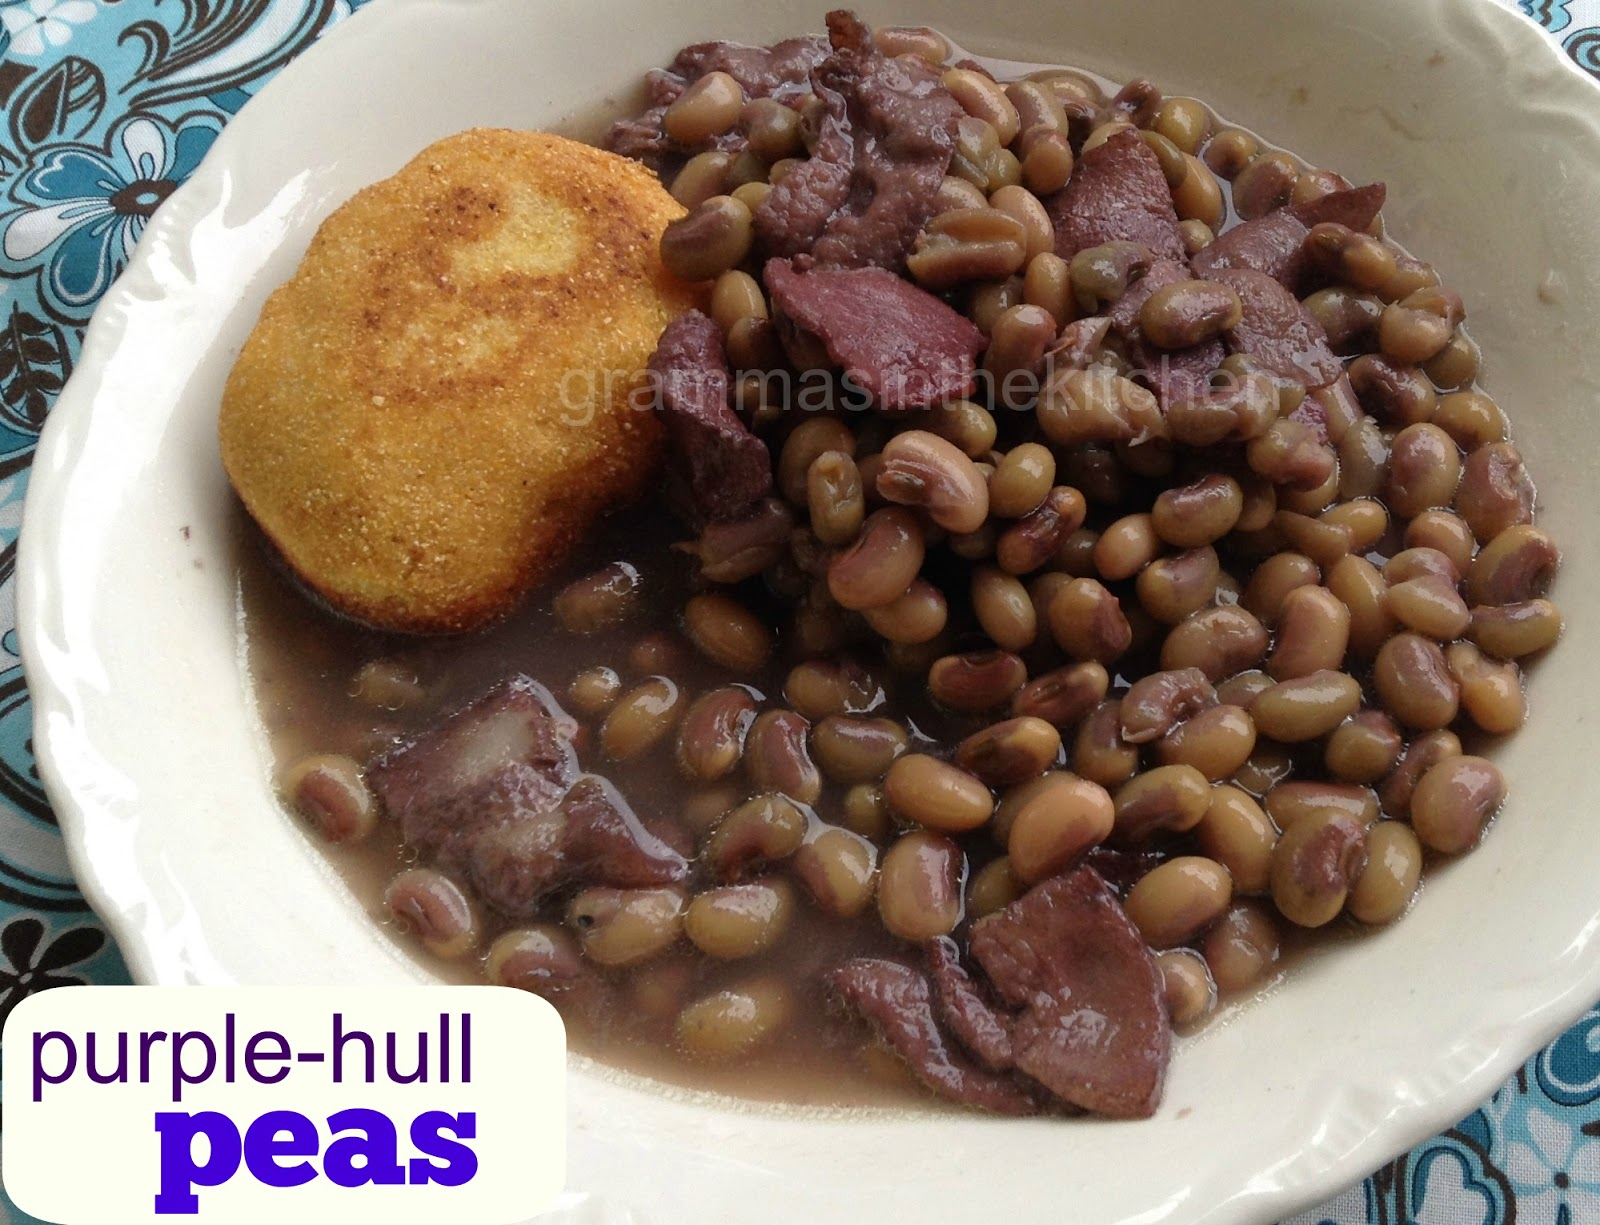 Gramma s in the kitchen purple hull peas